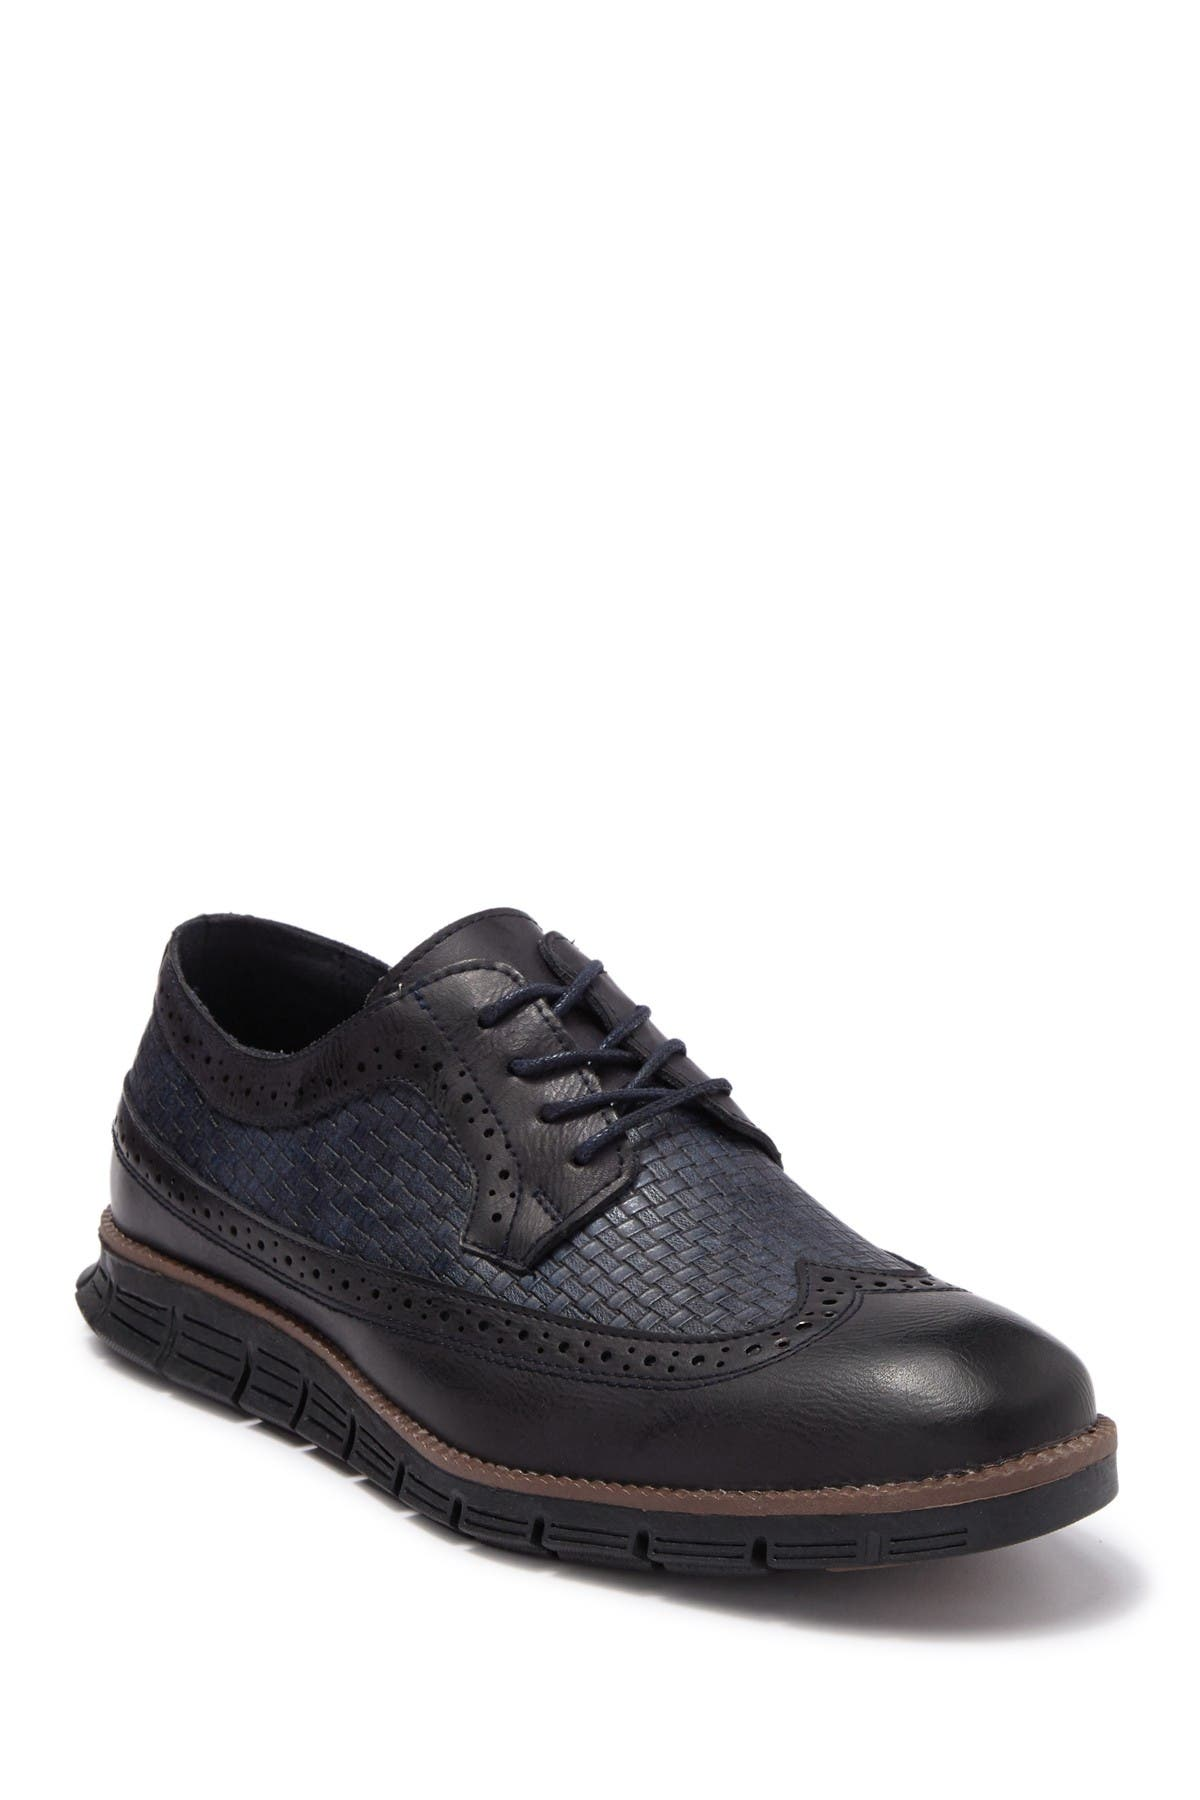 Image of XRAY Casual Woven Wingtip Lace Up Derby